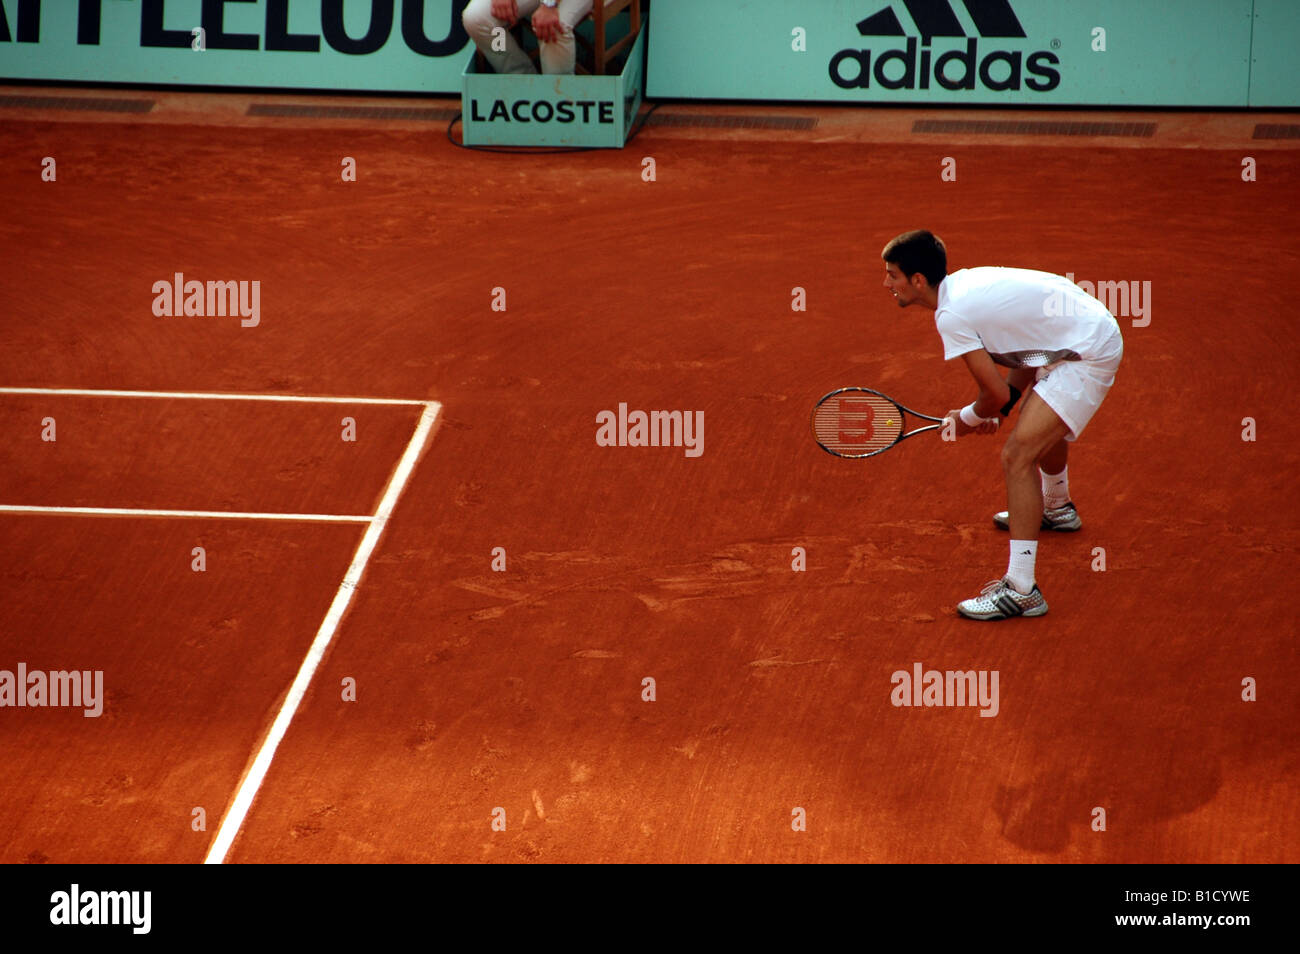 Novak Djokovic waiting to return serve at Rolland Garros during the 2008 French Open tennis tournament - Stock Image